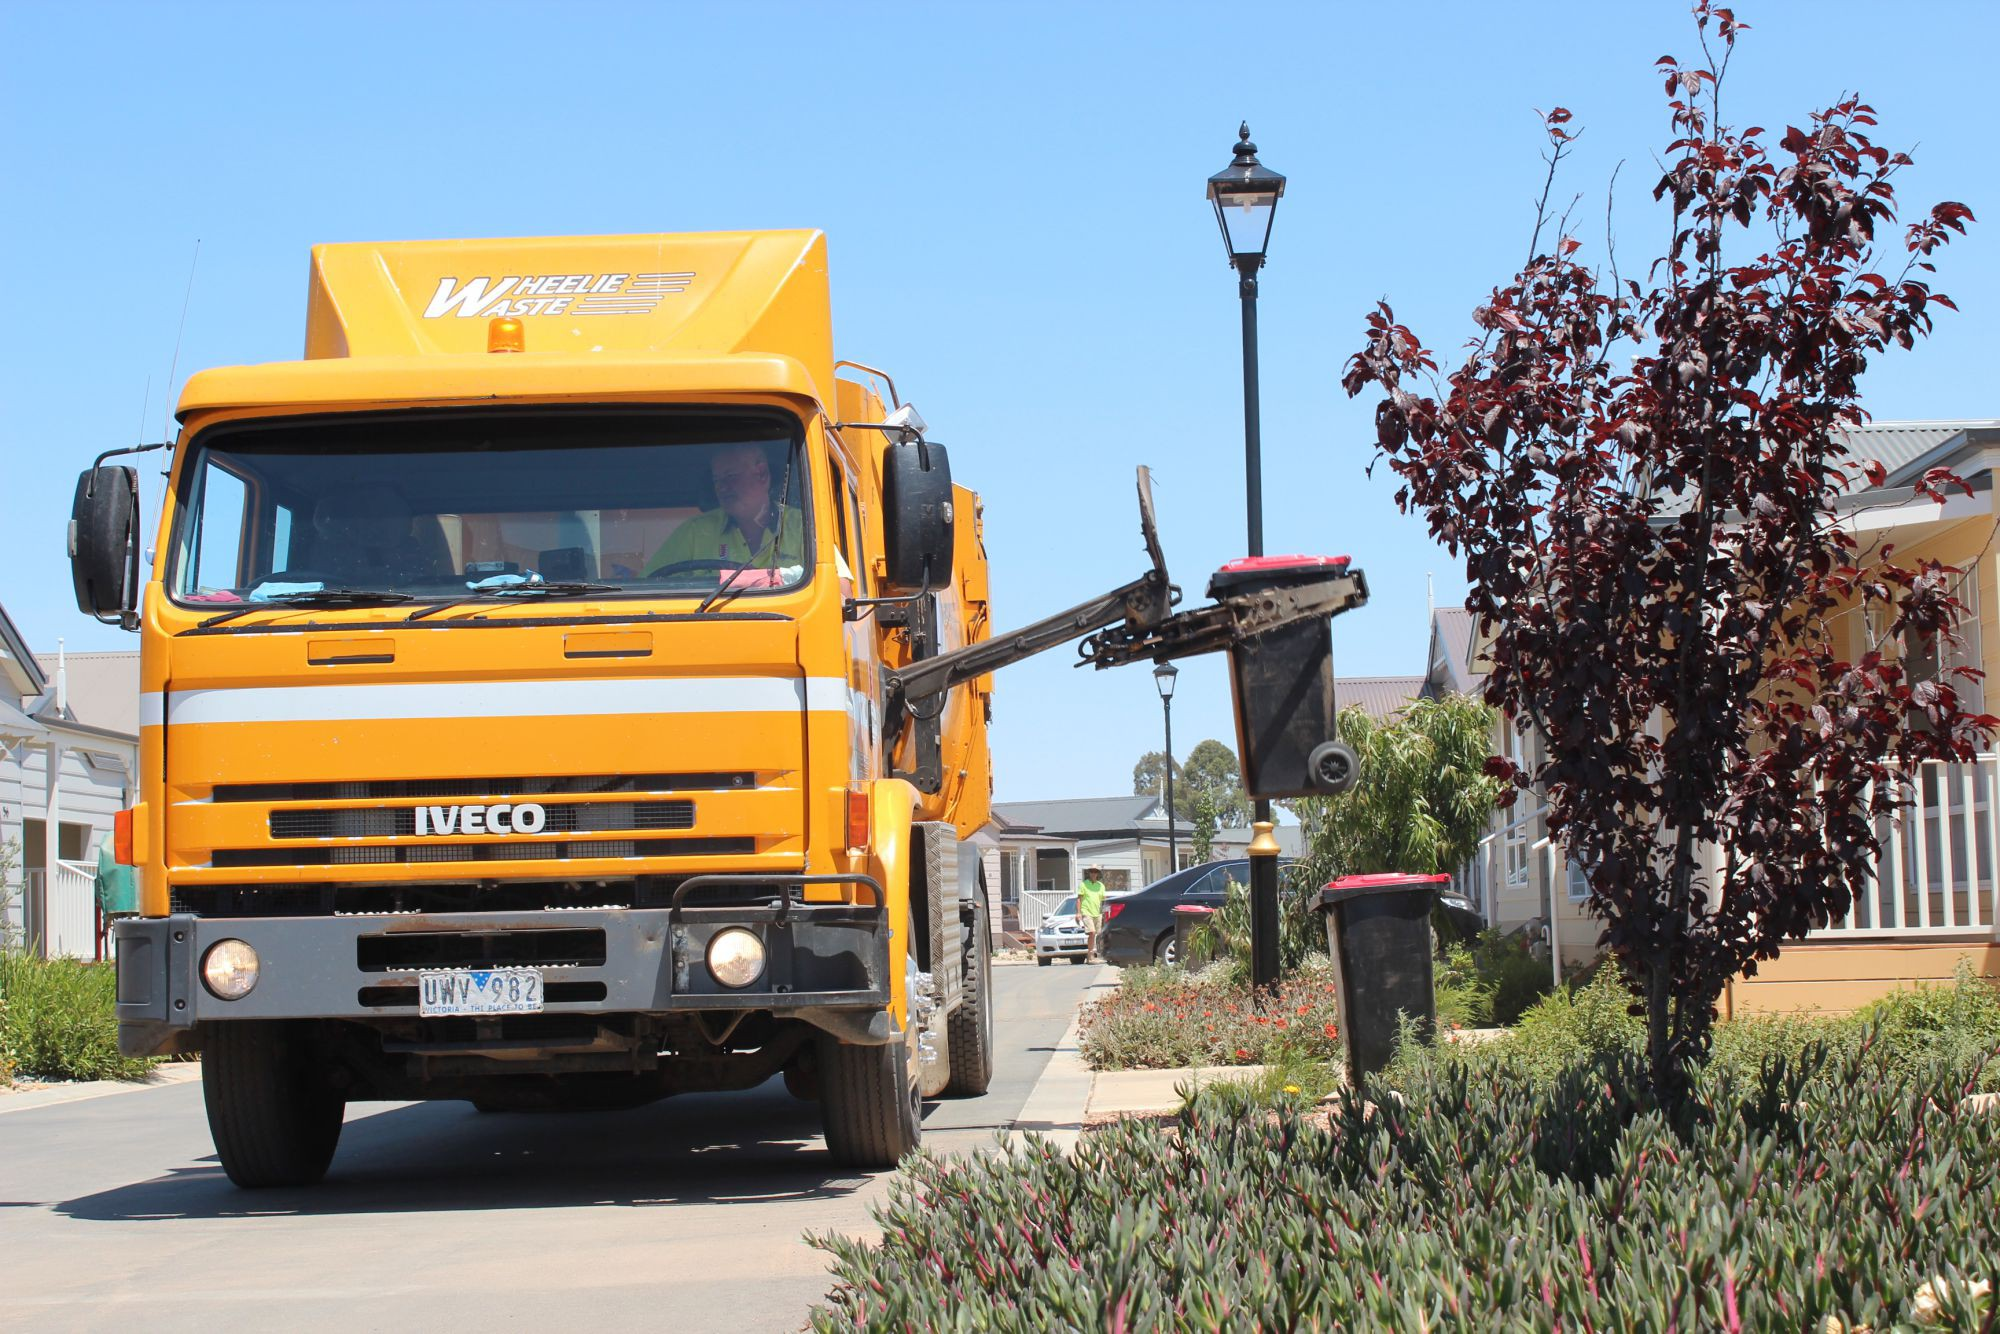 Residents invited to have their say on waste services